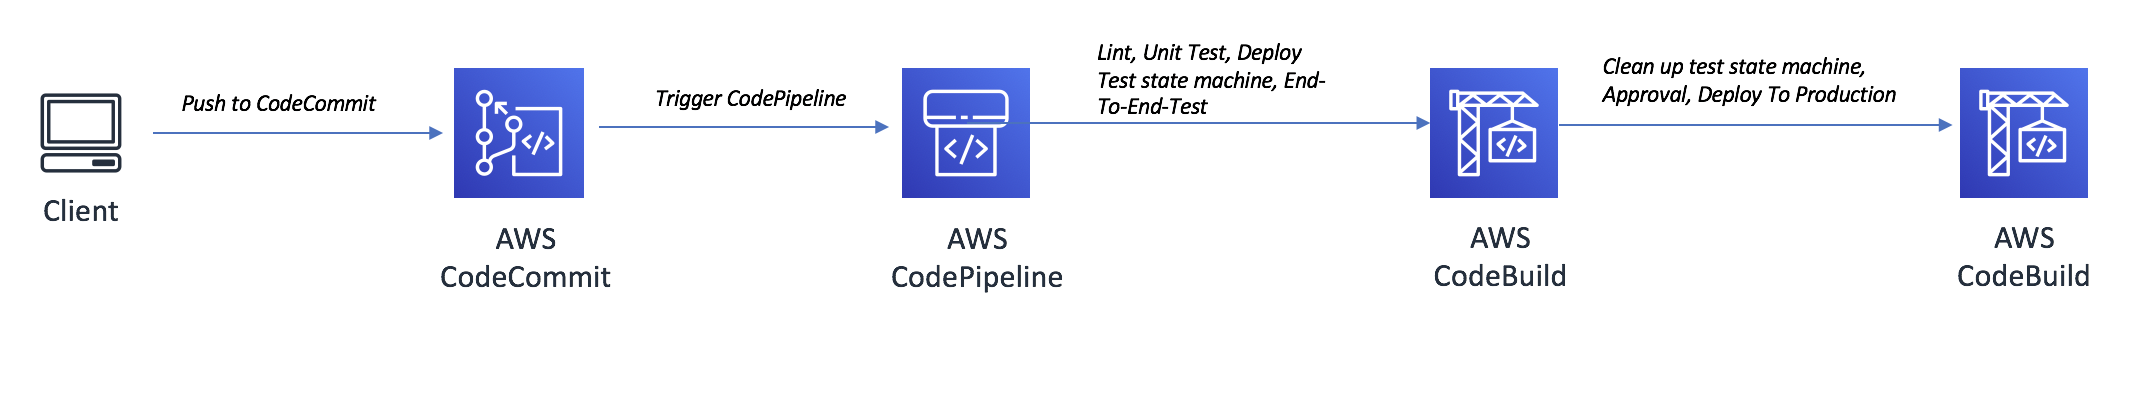 CI/CD pipeline steps